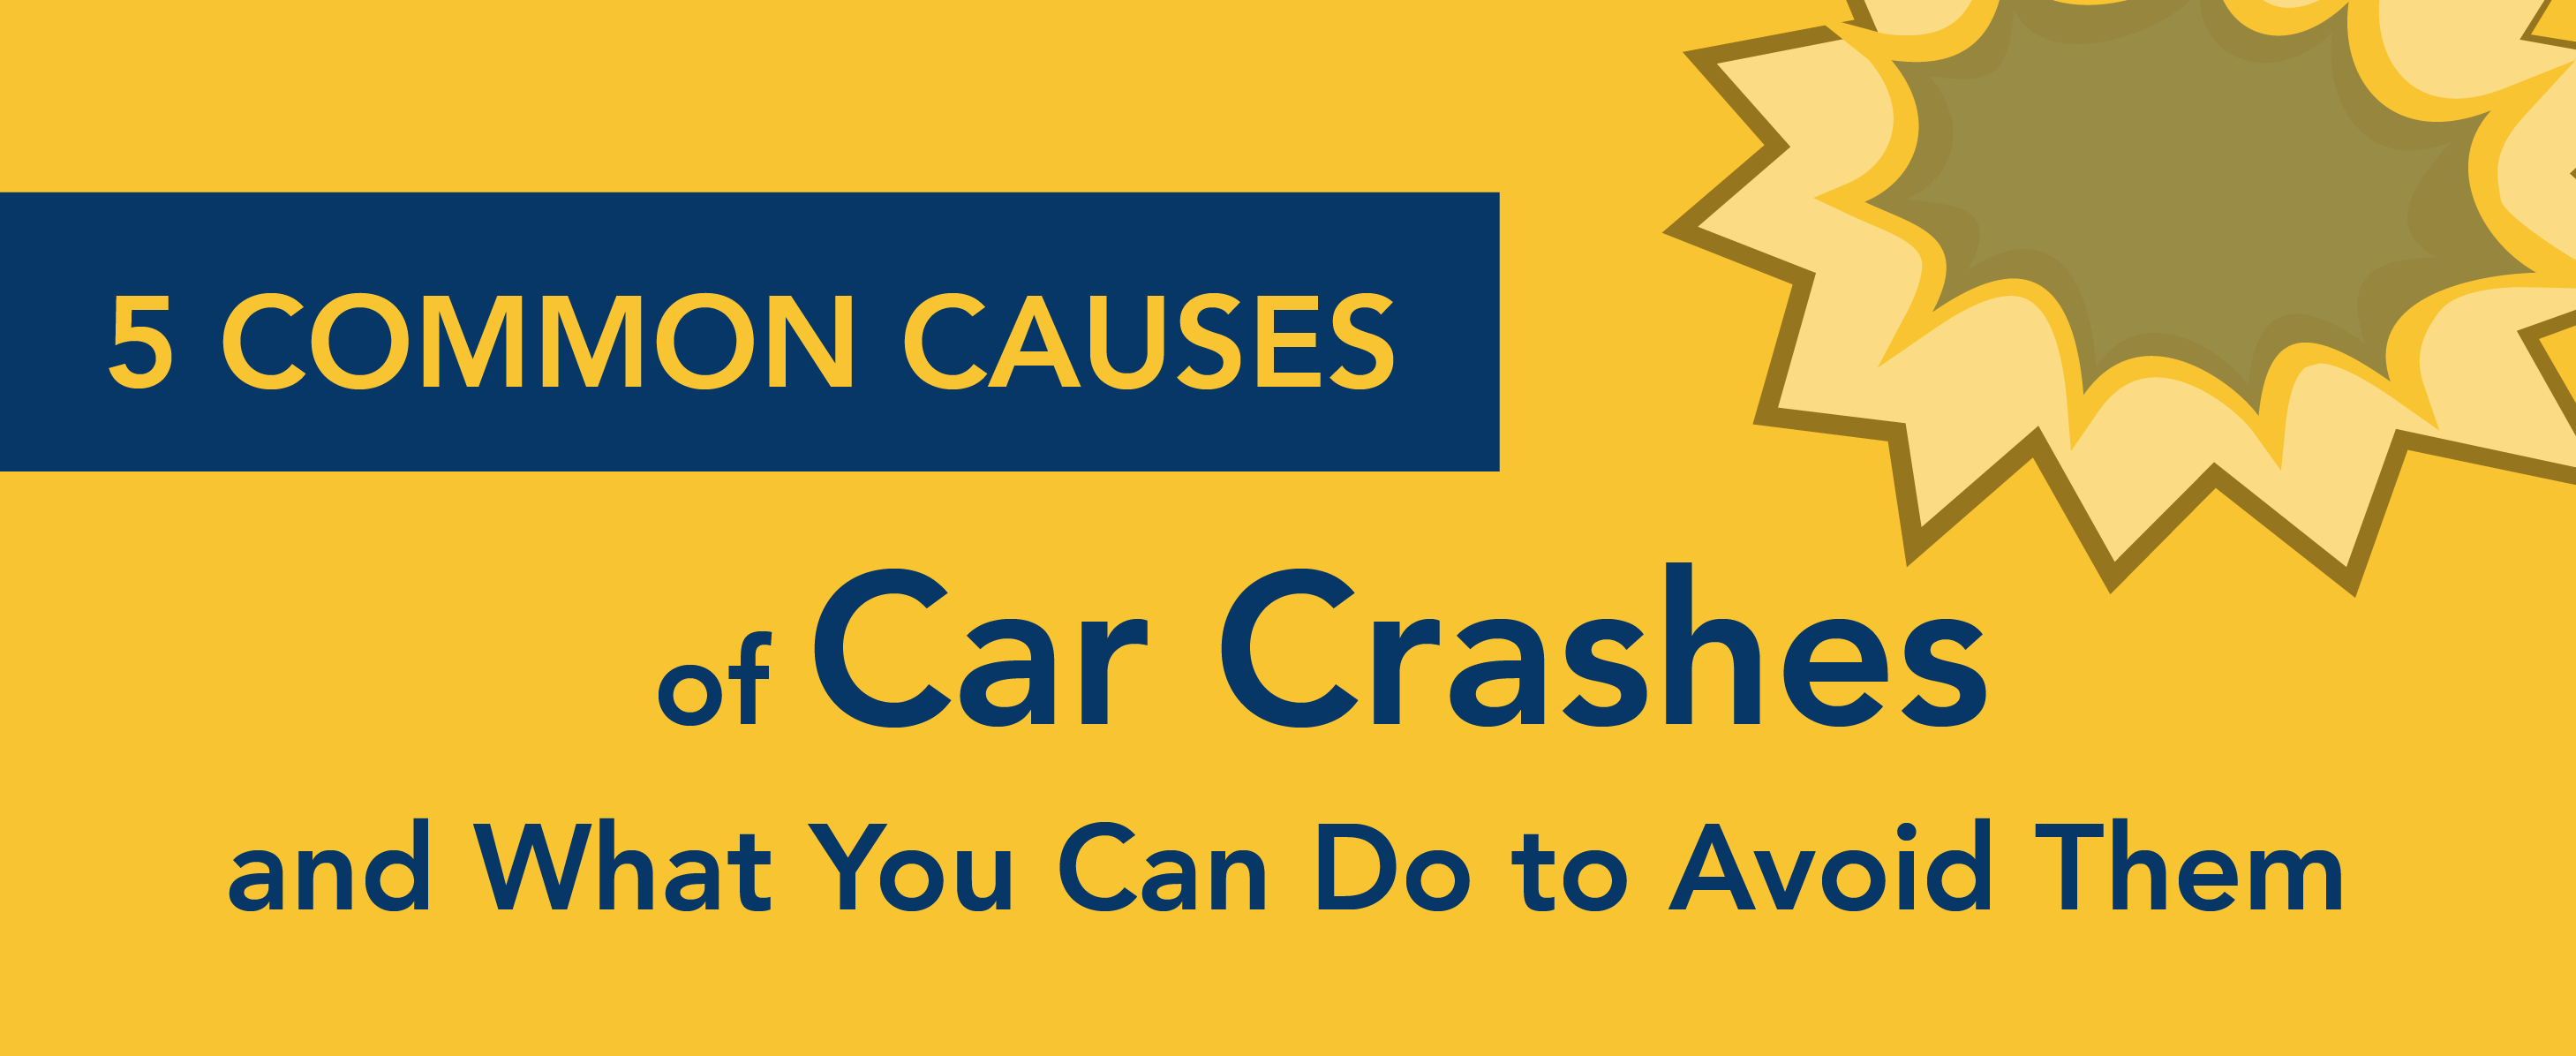 5 common causes for car crashes and what you can do to avoid them